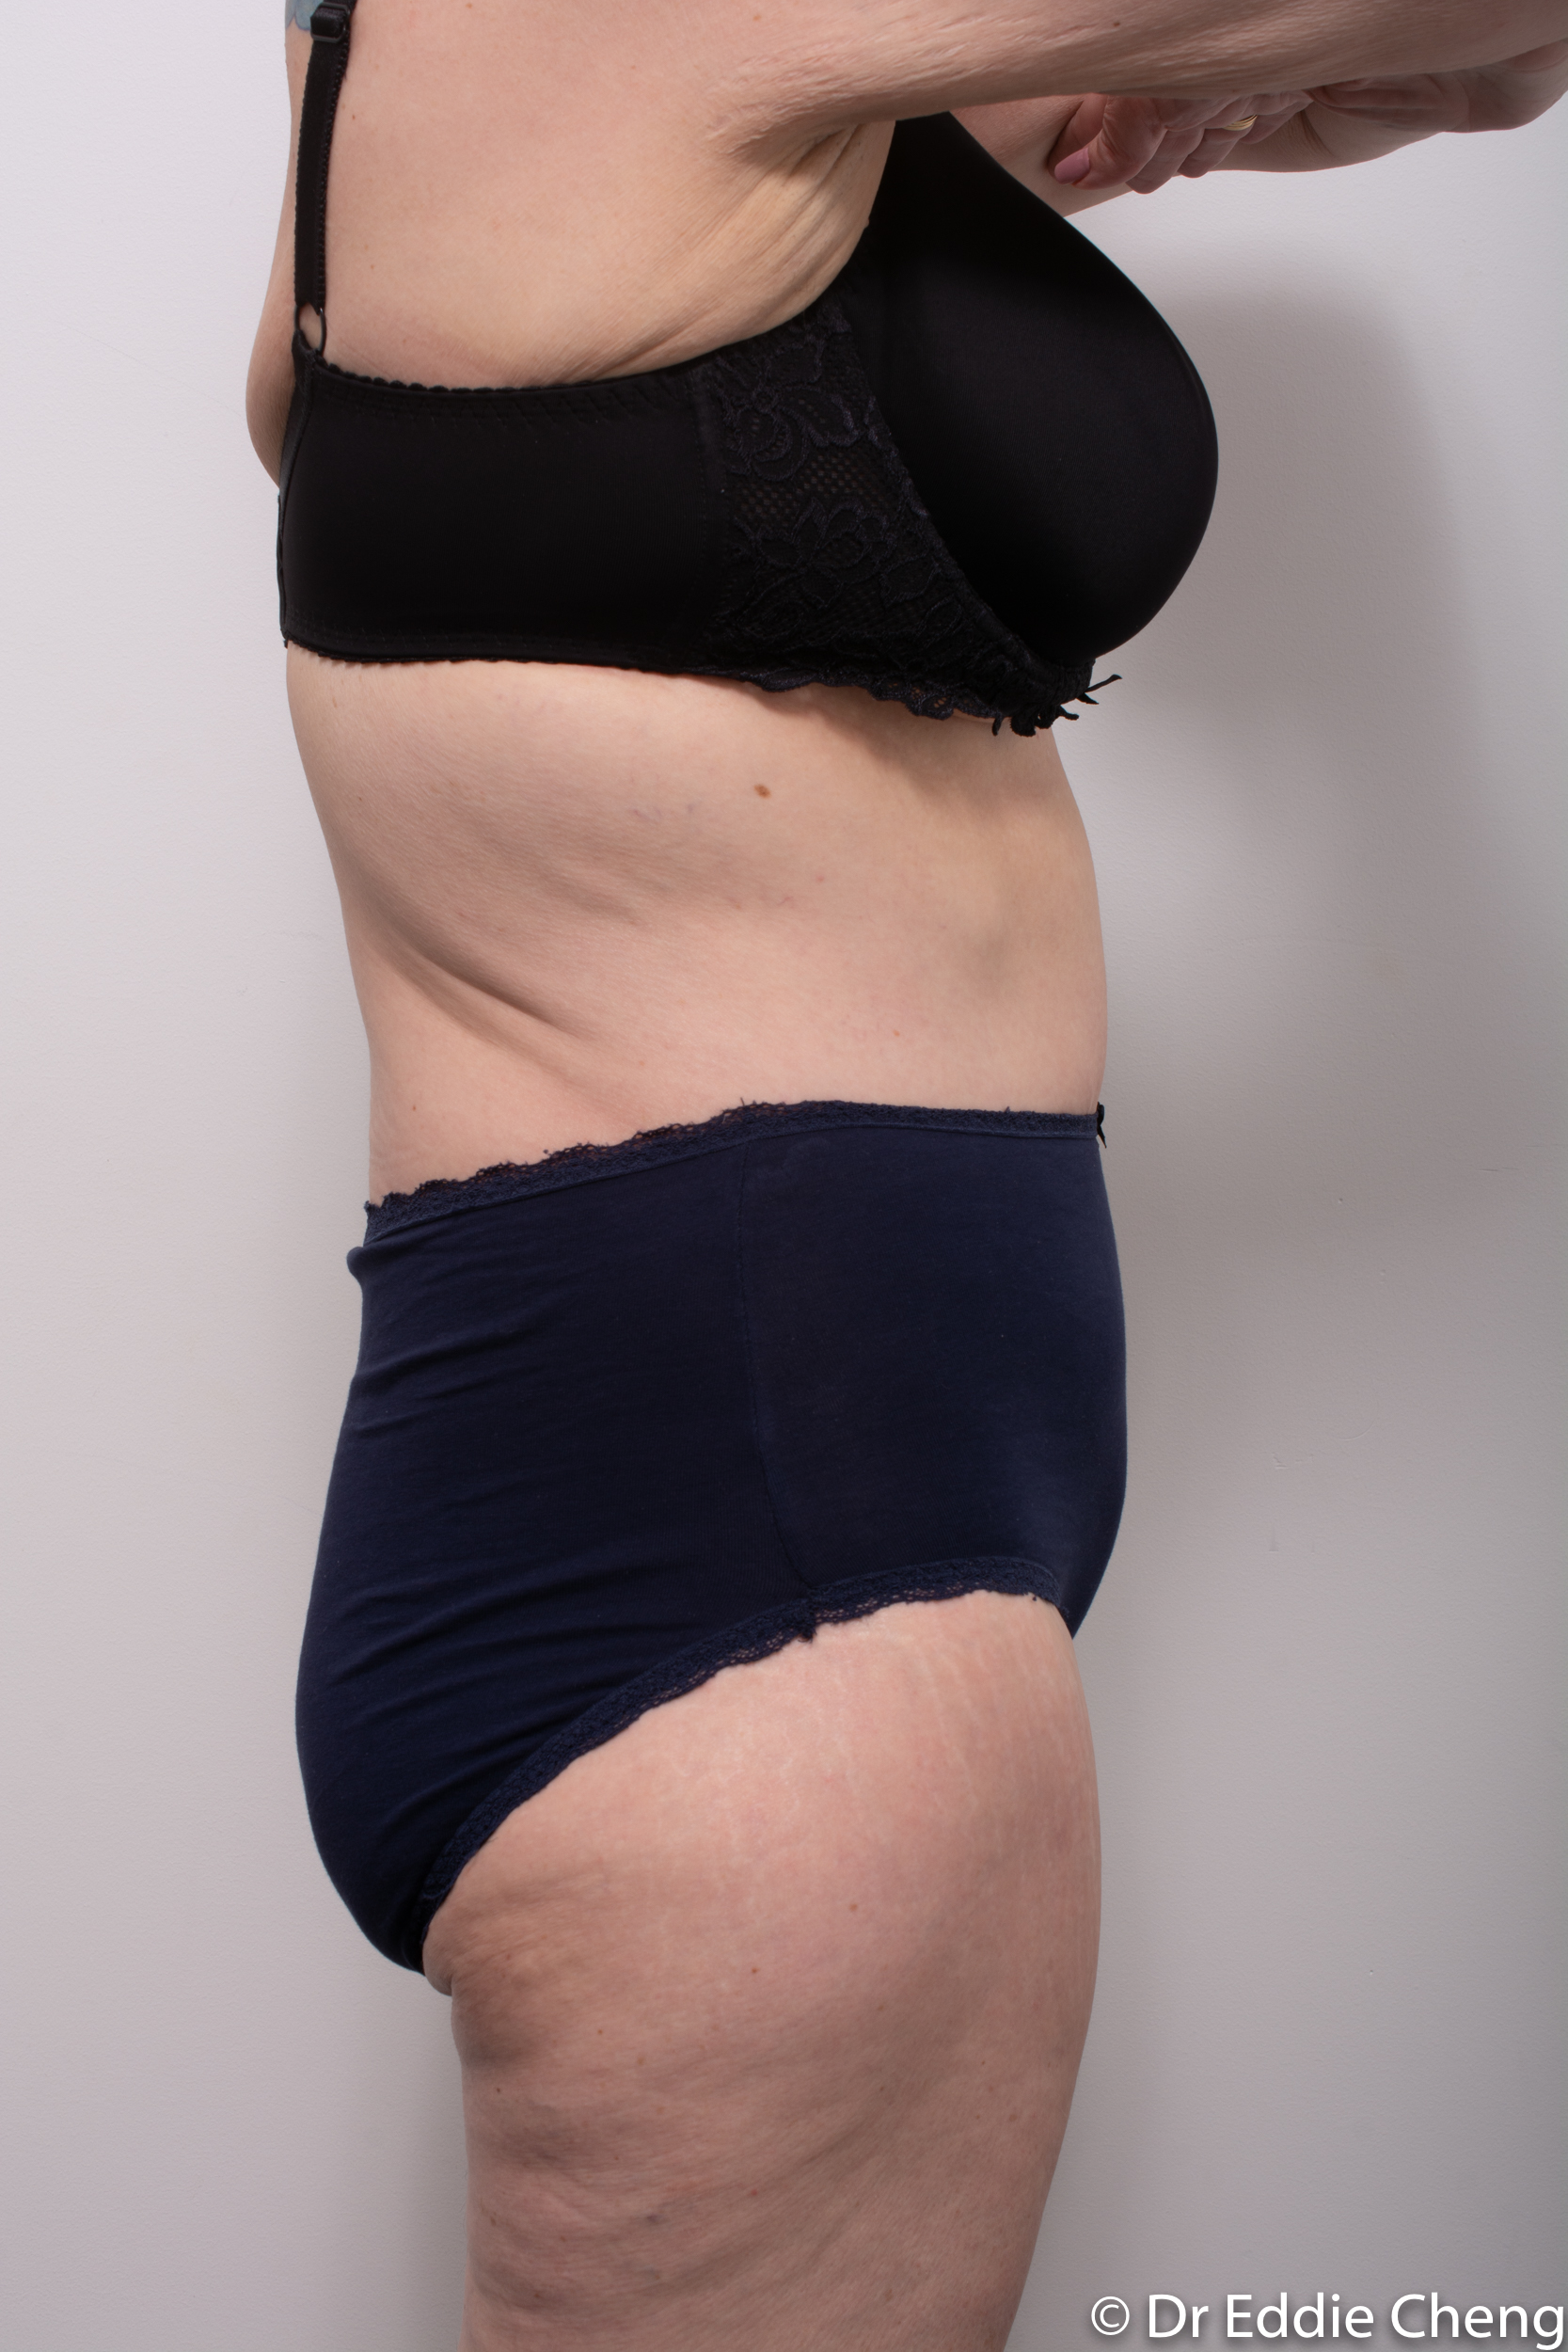 Body lift circumferential dr eddie cheng brisbane surgeon pre and post operative images -8